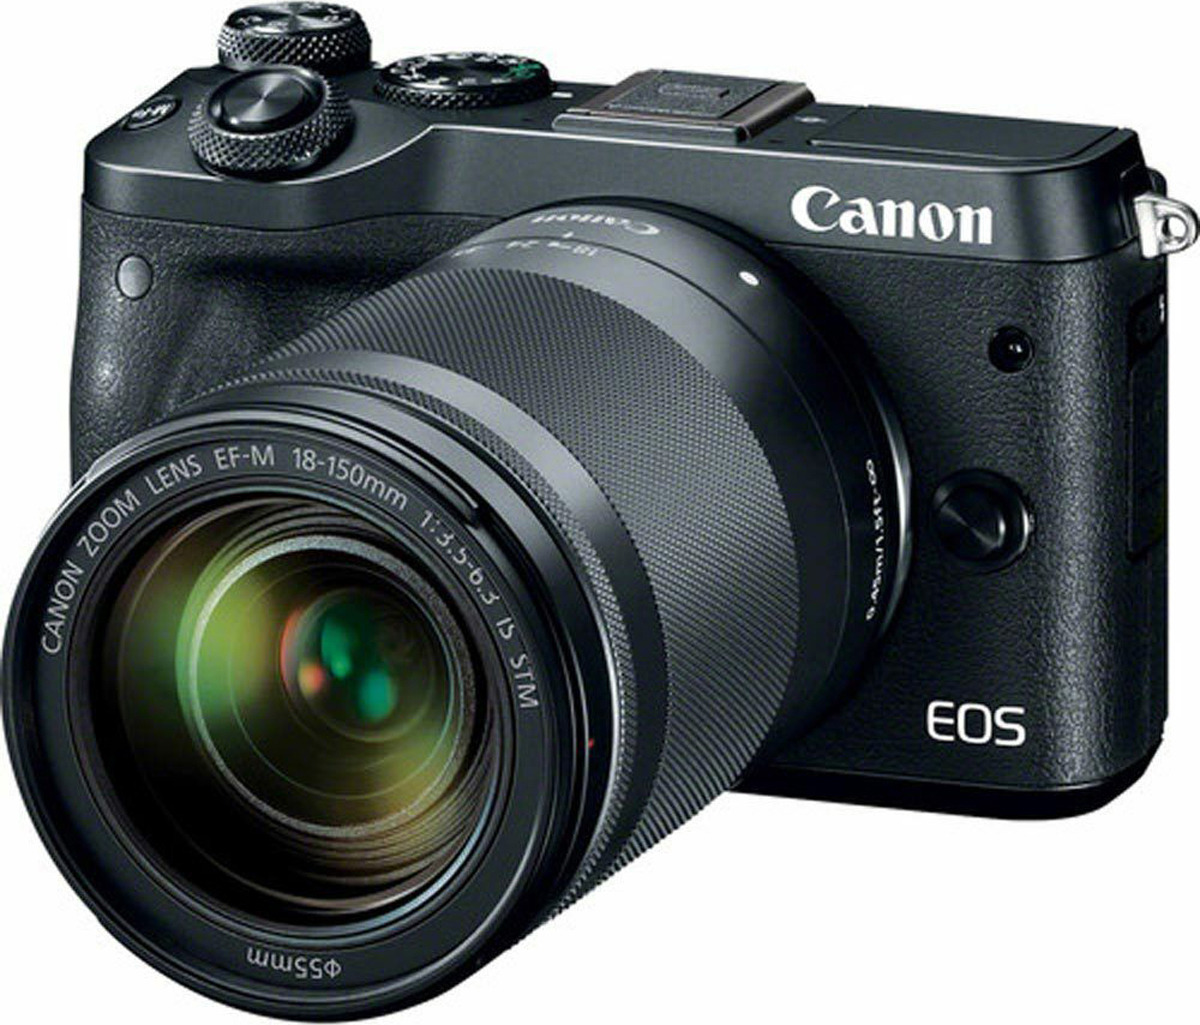 Фотоаппарат Canon EOS M6 kit 18-150 IS STM, черный фотоаппарат со сменной оптикой canon eos m6 kit ef m 18 150mm f 3 5 6 3 is stm